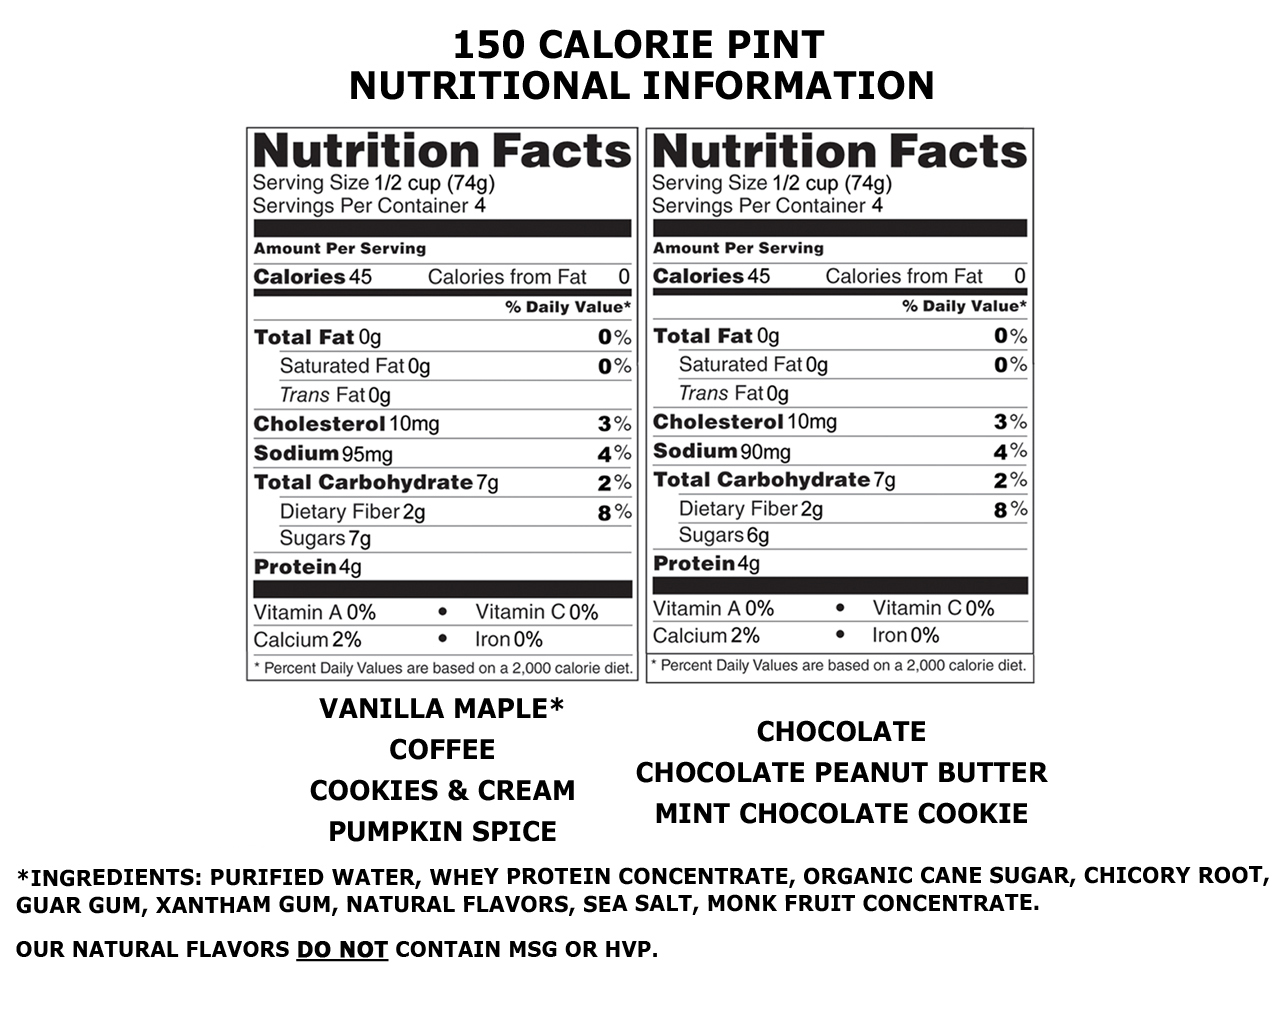 1/2 cup (4 servings per container) = 45 calories, 0 fat calories, 7 carbs, 2 g fiber, 7 g sugar, 4 grams of protein.